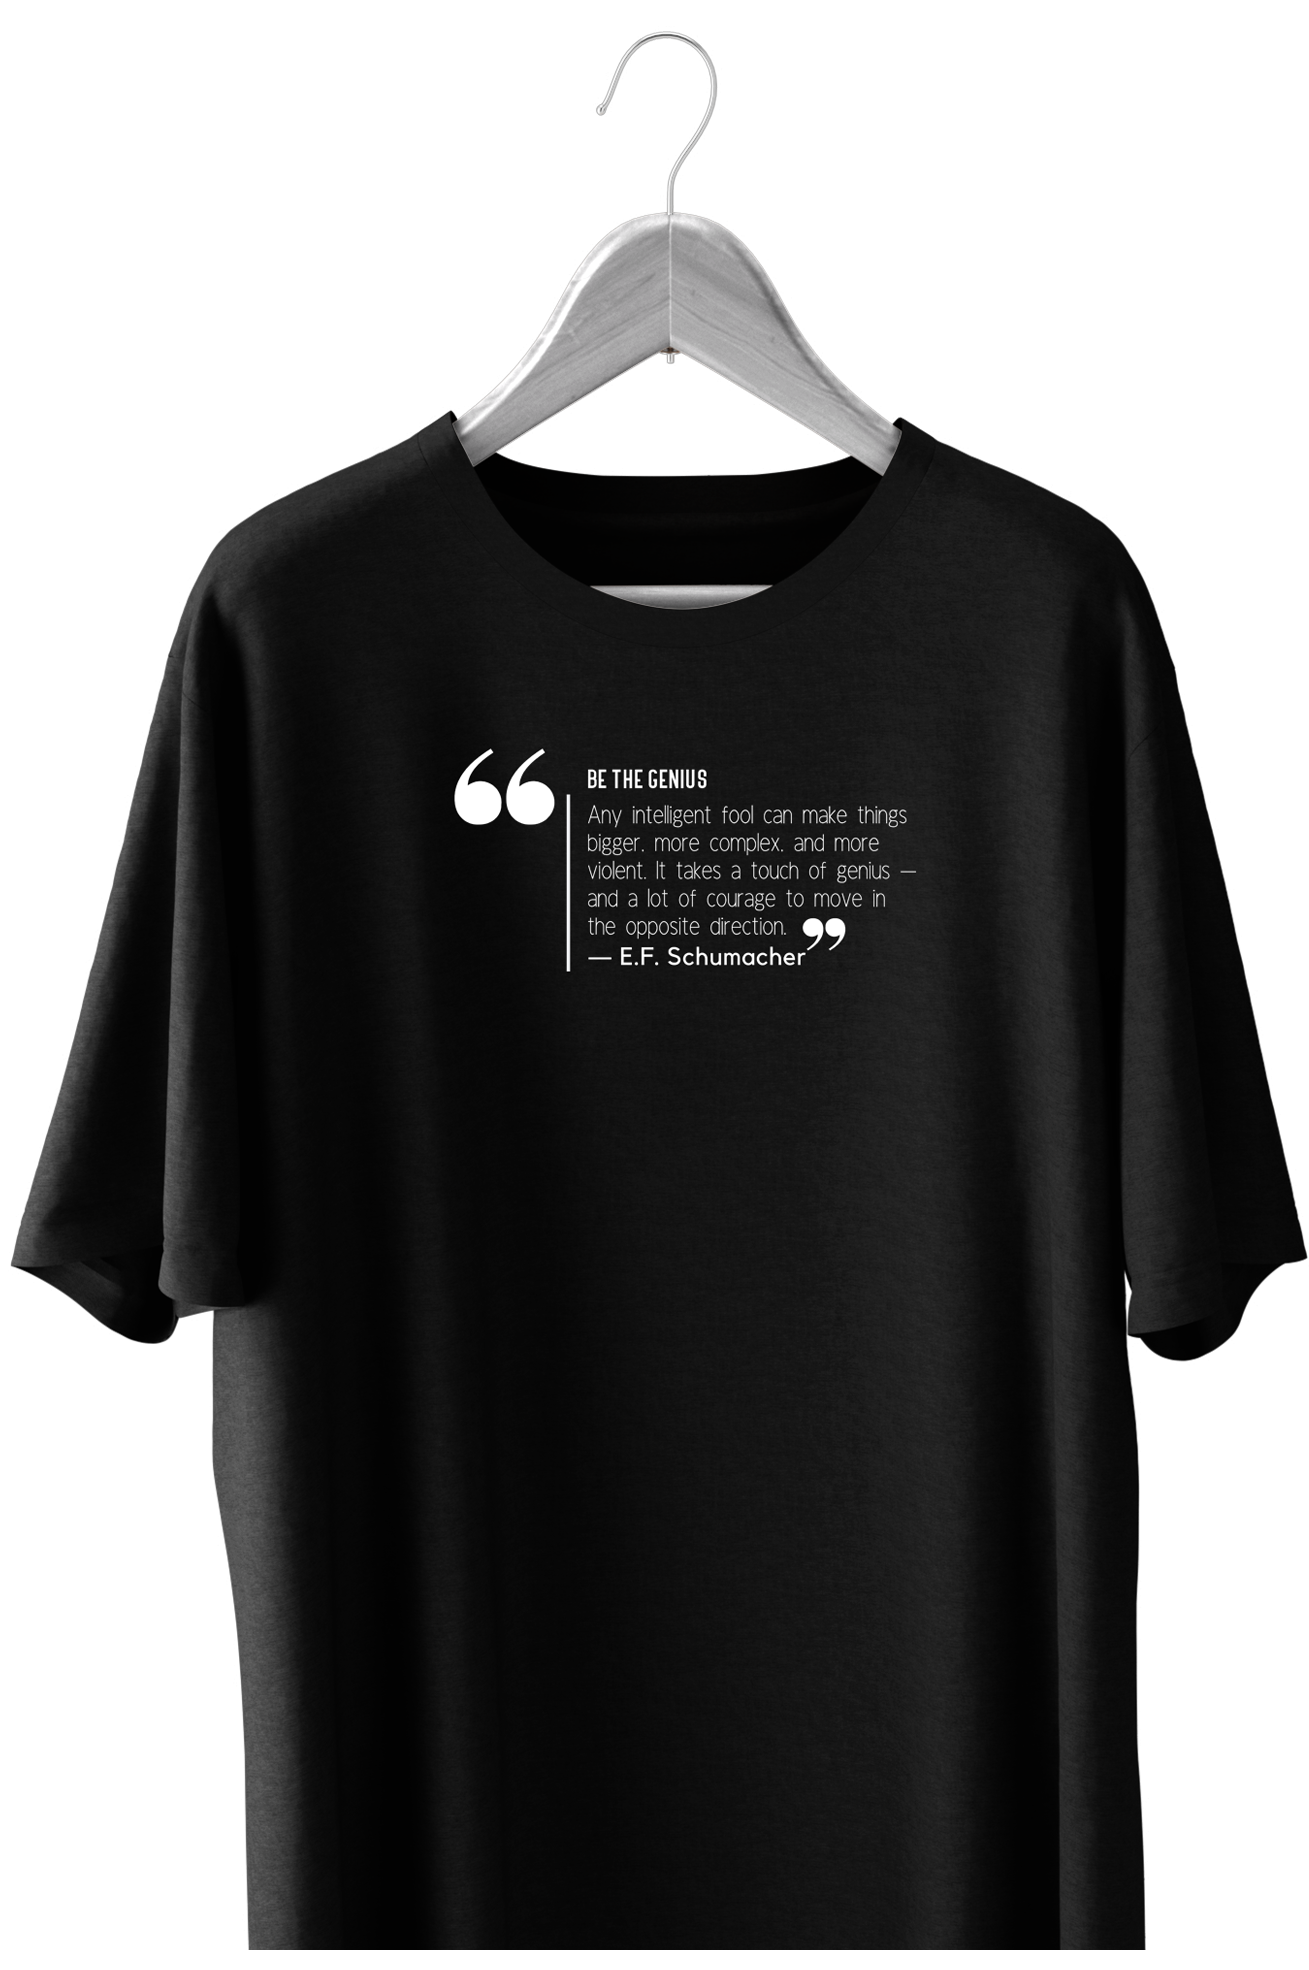 Be The Genius Short-Sleeve Unisex T-Shirt